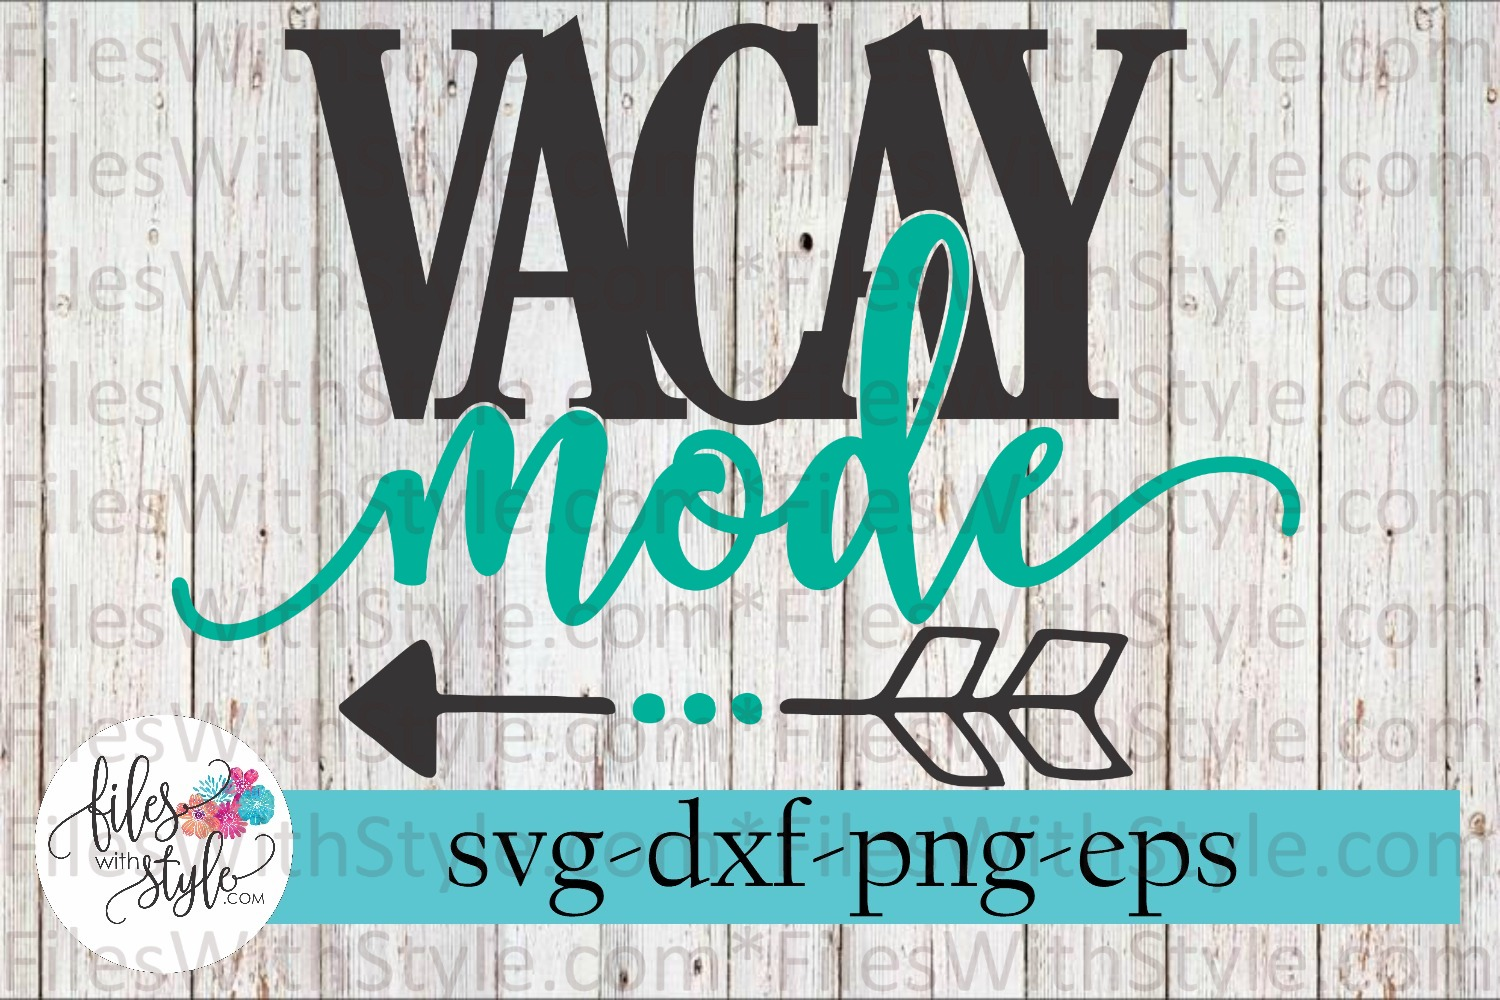 Vacay Mode Beach Vacation Arrow SVG Cutting Files example image 1